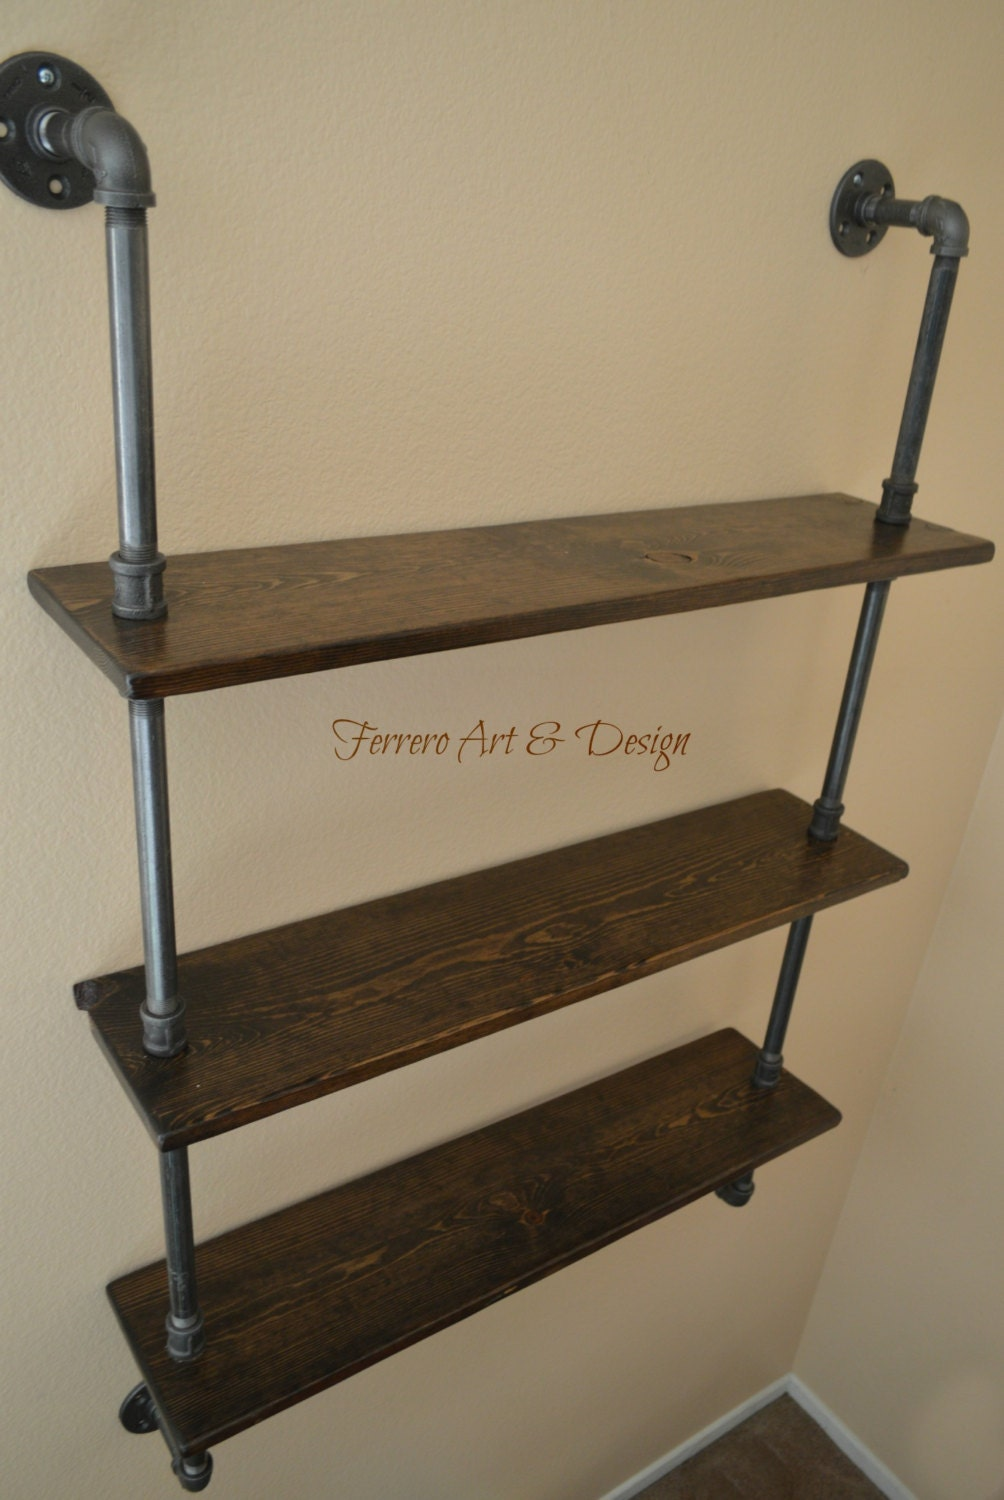 steampunk shelf industrial shelves wall by ferreroartdesign. Black Bedroom Furniture Sets. Home Design Ideas